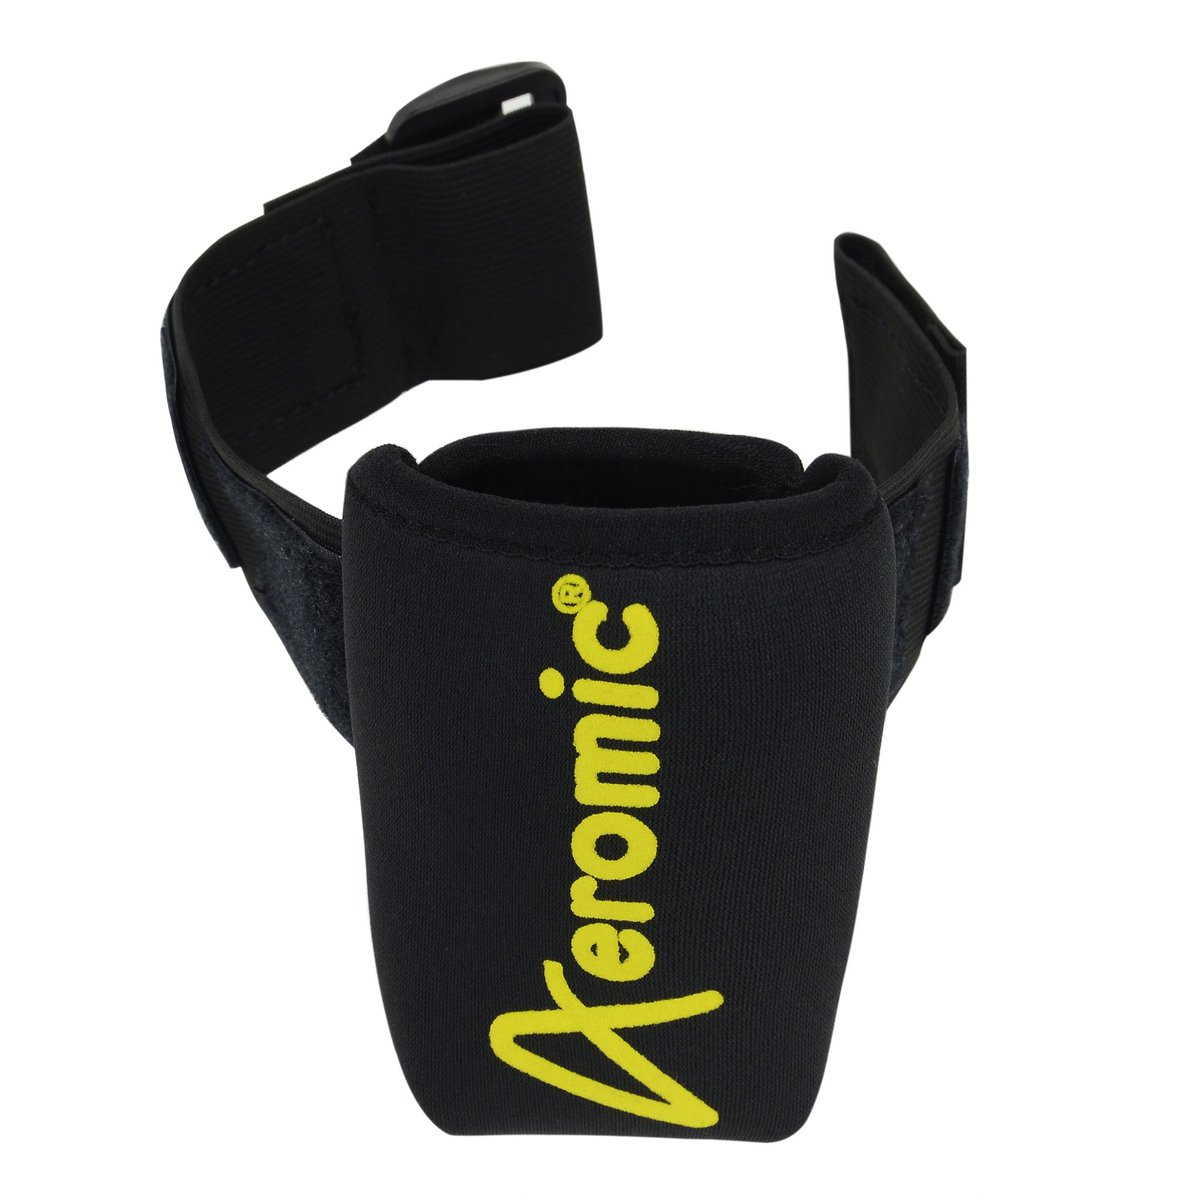 Aeromic Armband Arm Pouch $ 30 https://pooo.st/4x6tj #gymlife #fitfampic.twitter.com/yp6K158tFz